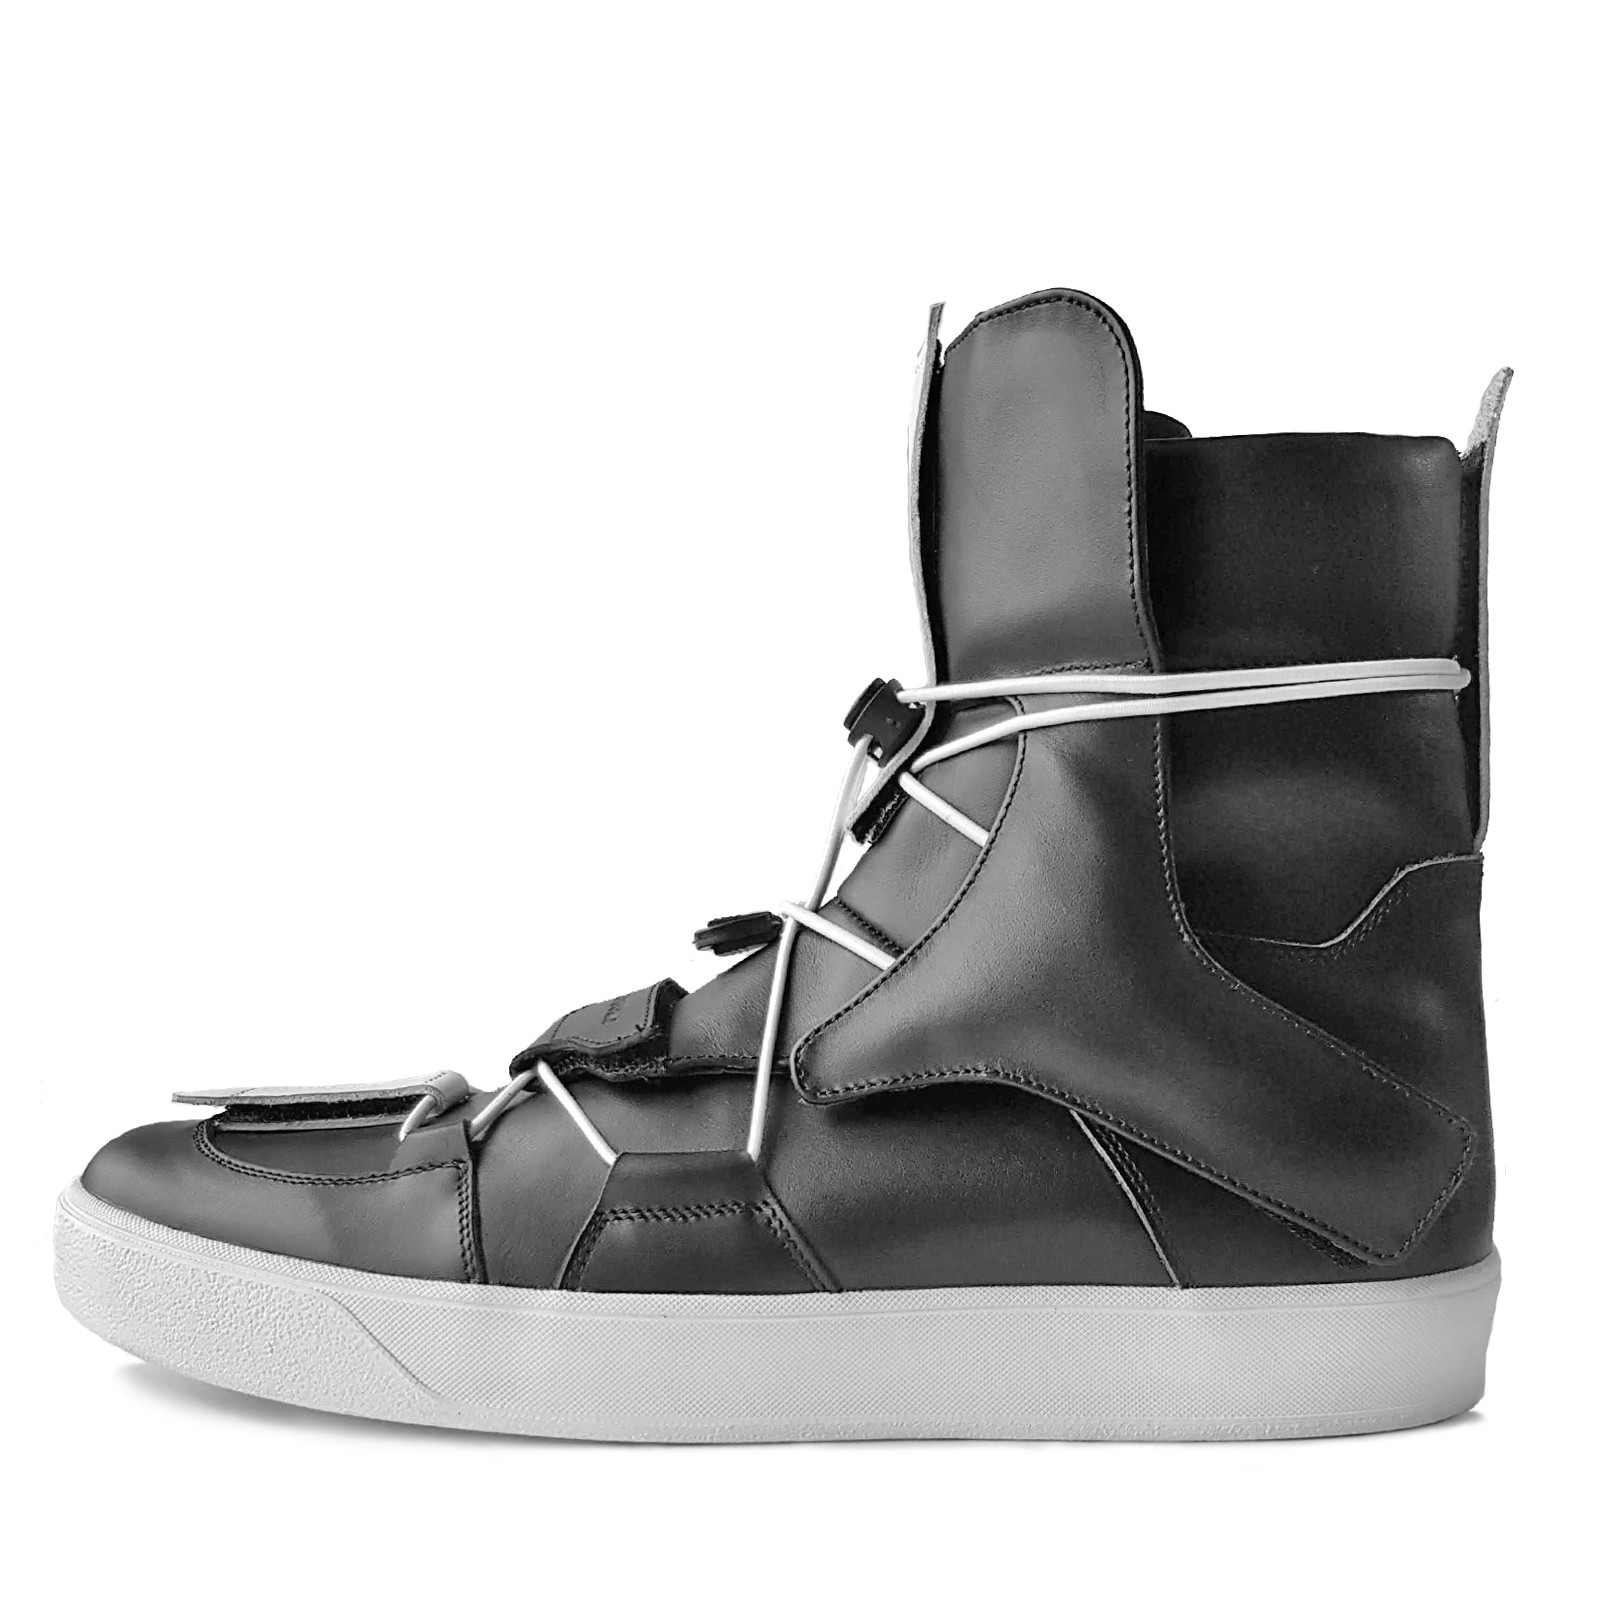 RDS CONSTRUCT SV. Replaceble details high-top sneakers.